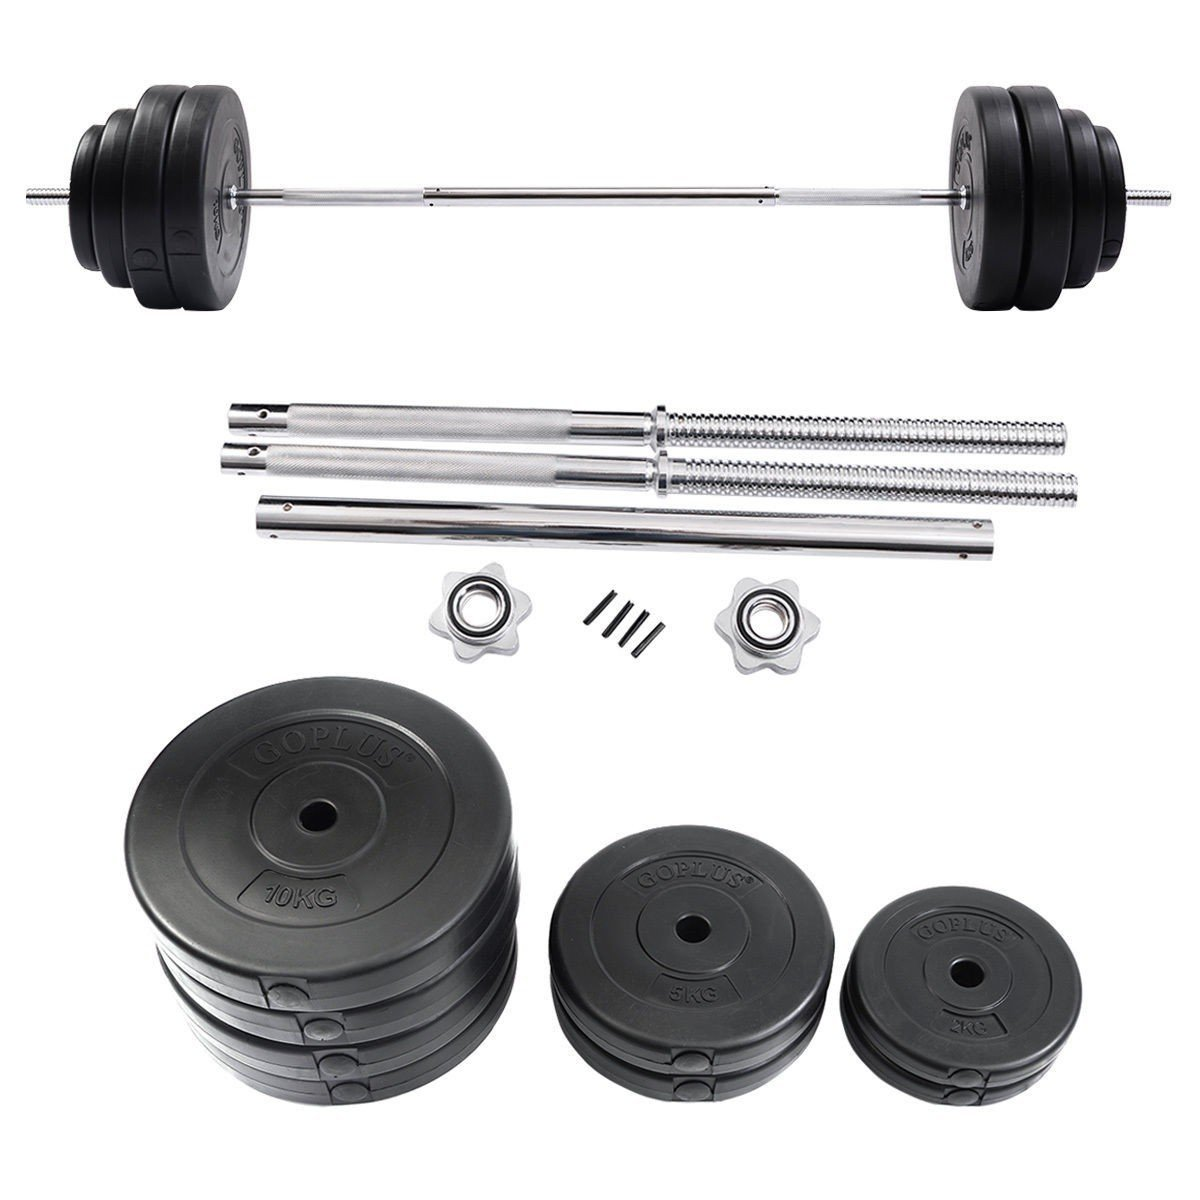 132 lbs Gym Lifting Exercise Barbell Dumbbell Set Steel Bar Polymer Weights